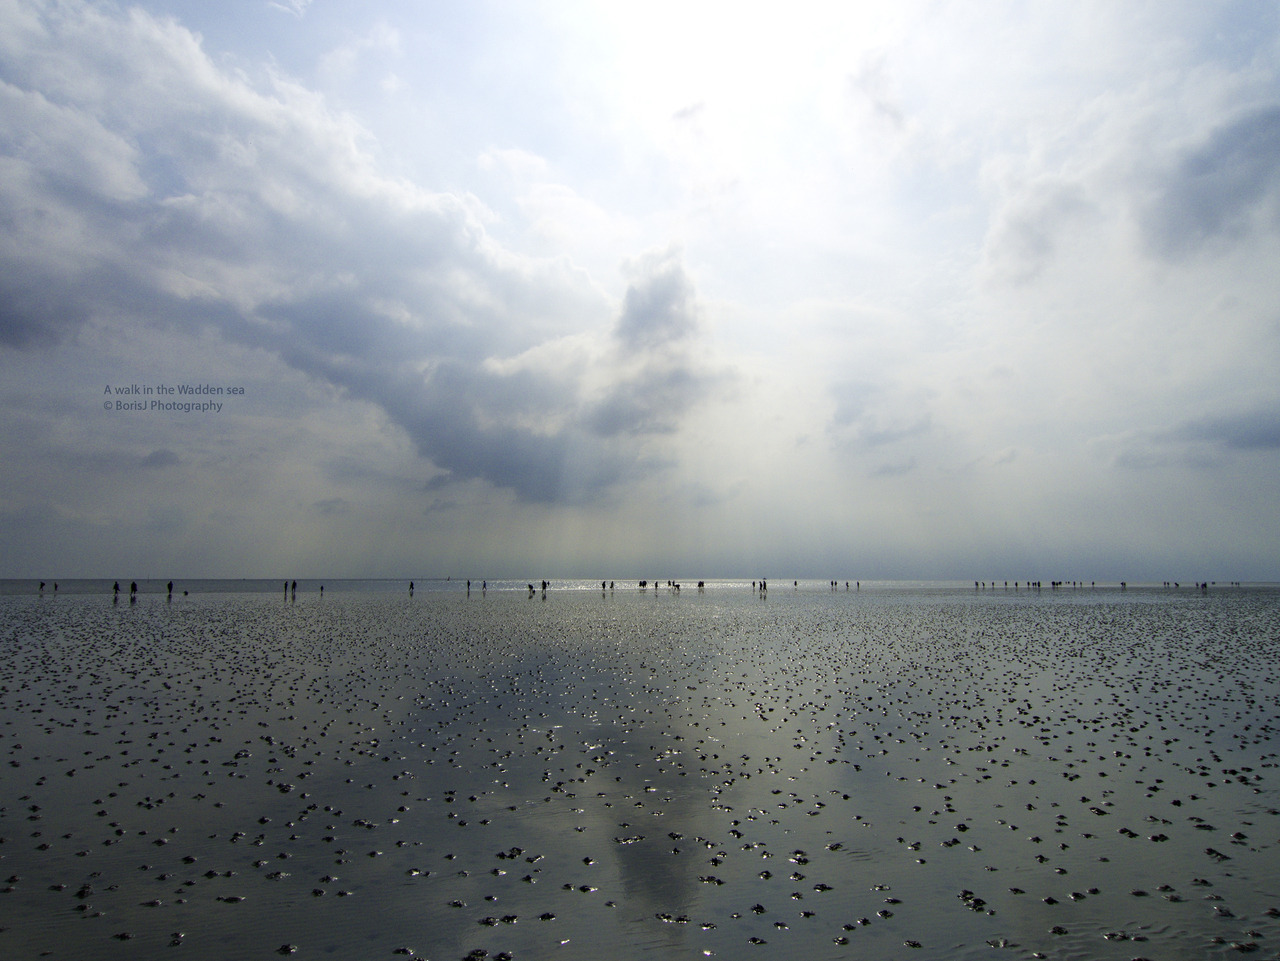 A walk in the Wadden sea A walk thru the Wadden sea in Büsum (Germany). The Wadden sea belongs to the World Heritage and is one of the nicest Areas in Schleswig-Holstein. By the way I love the reflections of the Sky, it was an amazing day! Panasonic Lumix LX31/1000s ISO 80 f/7.1 Büsum, Germany Flickr - Twitter - Facebook - Google+ - Posterous - 500px Copyright © BorisJ Photography - Boris Jusseit - all rights reserved - please do not use this image on any media without my permission.